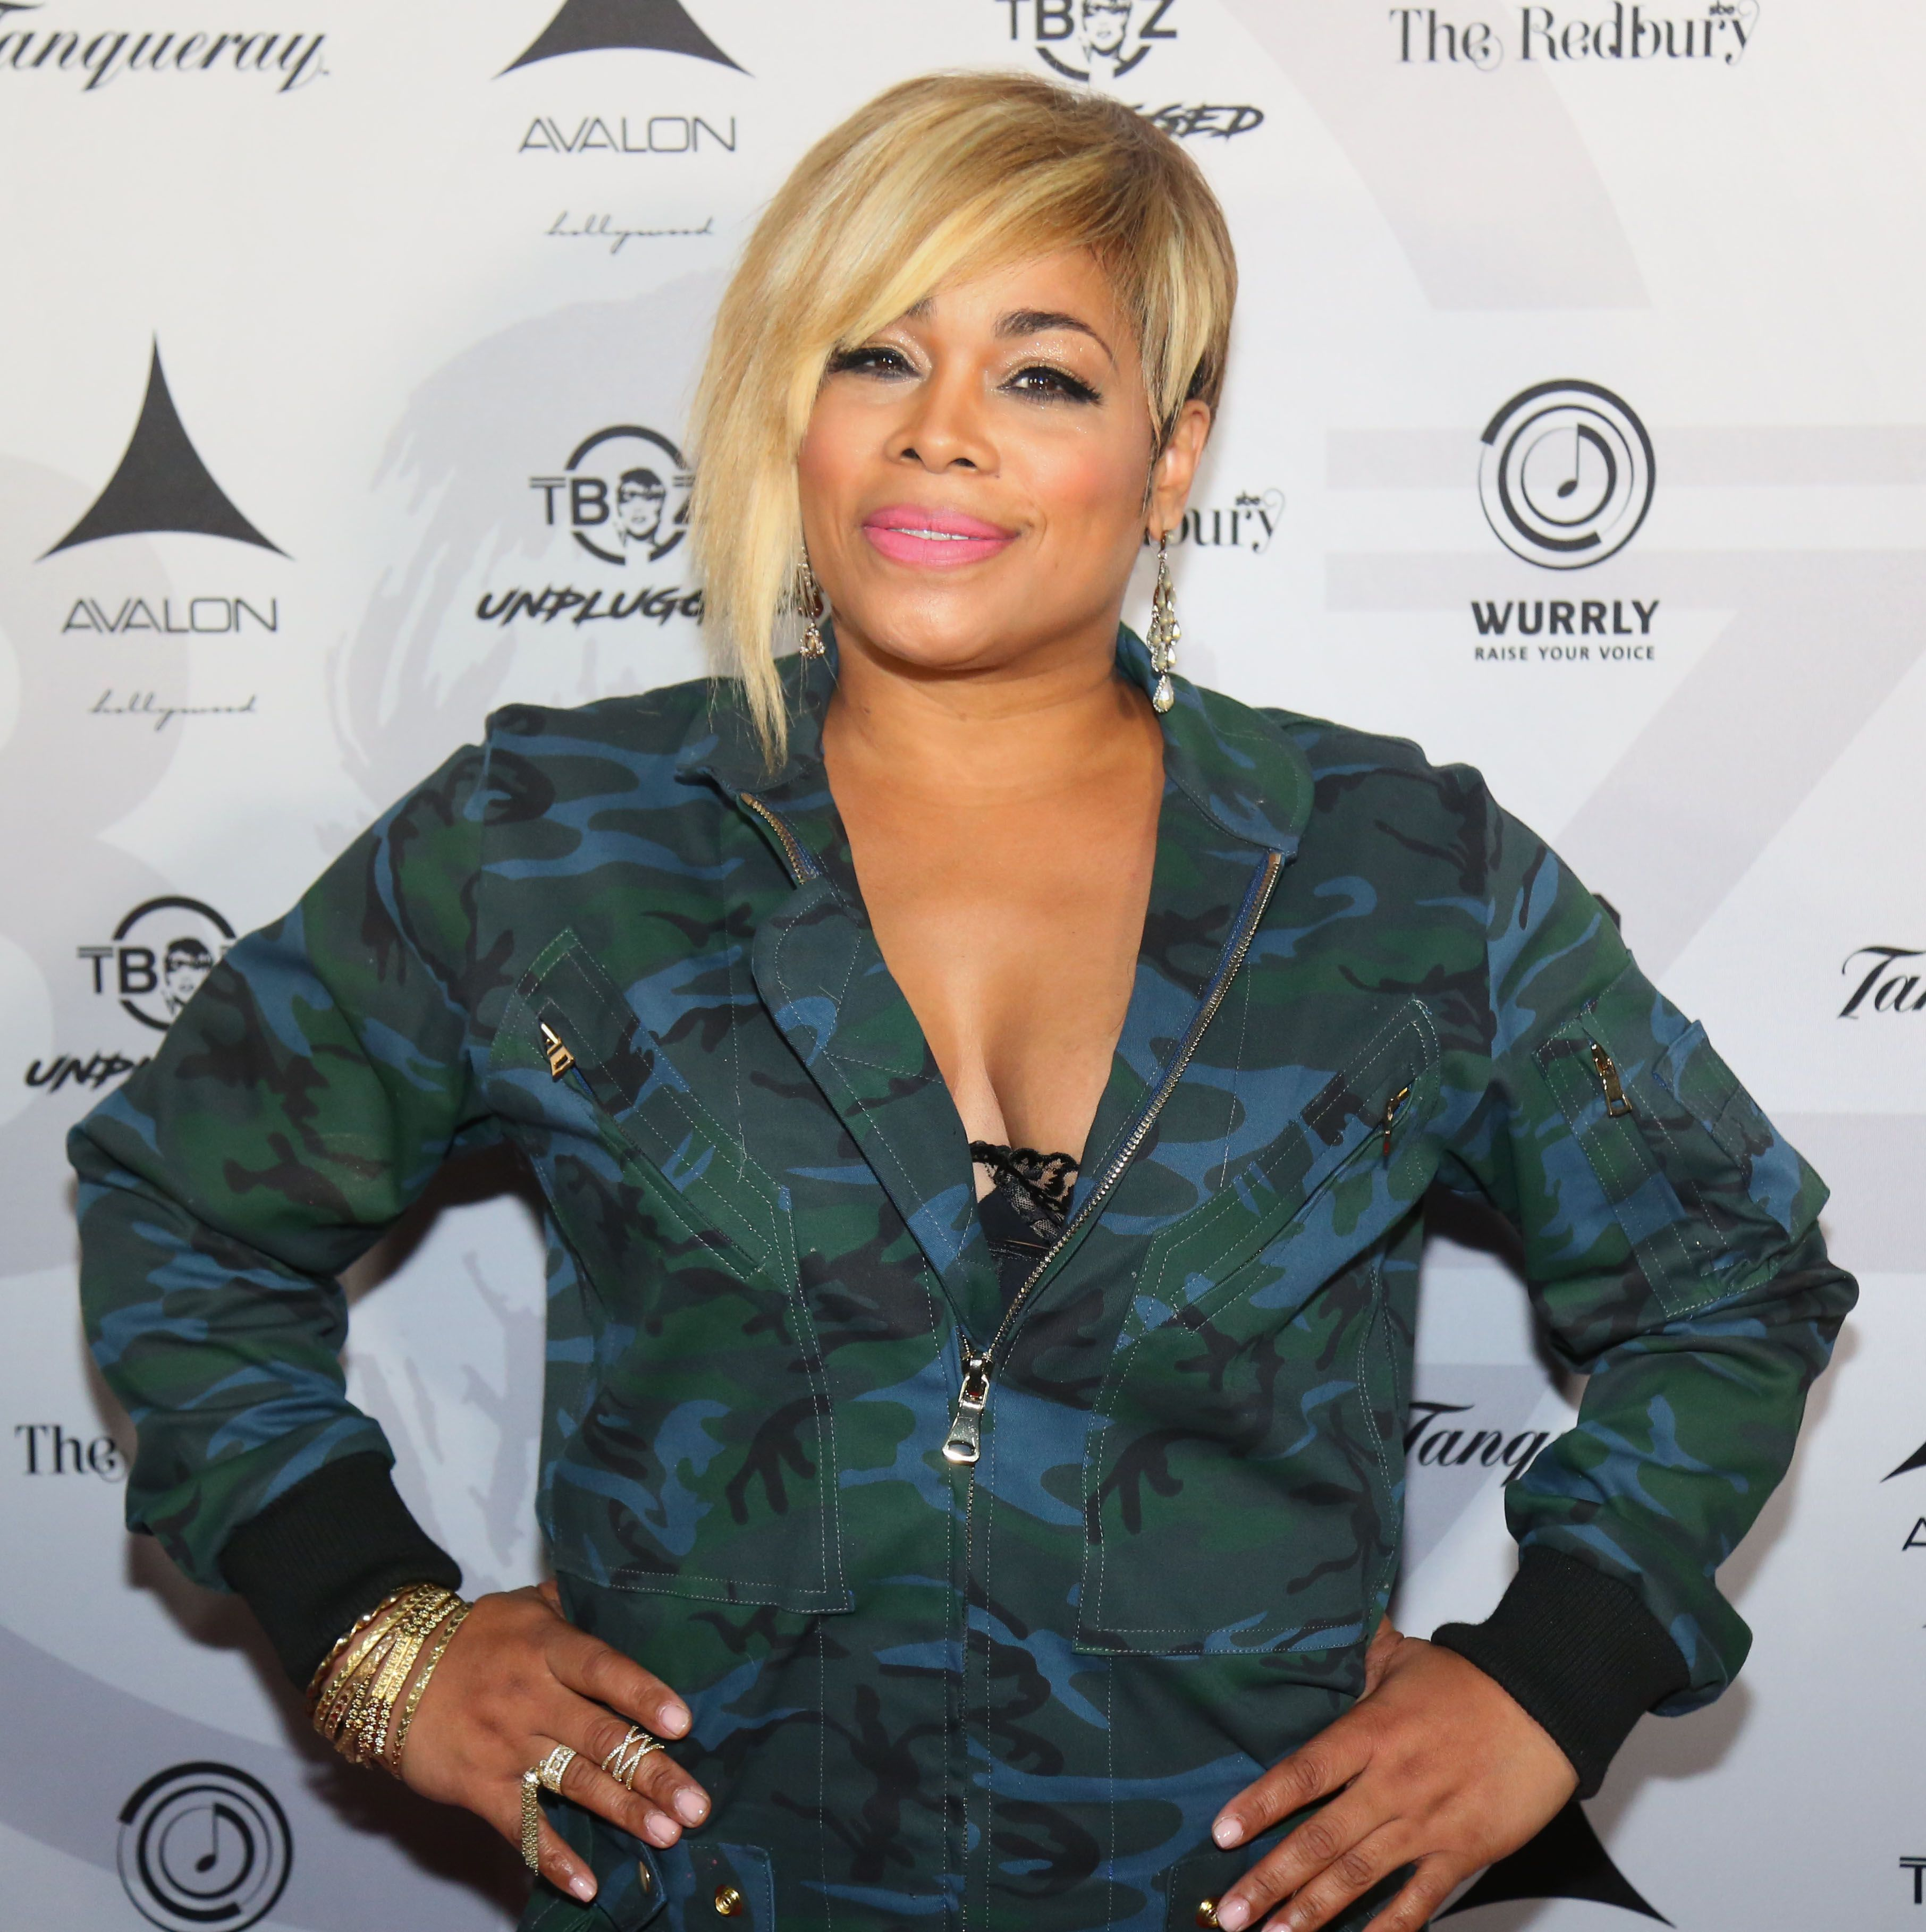 "Tionne ""T-Boz"" Watkins at the ""T-Boz Unplugged"" benefit concert in Hollywood in January 2017. 